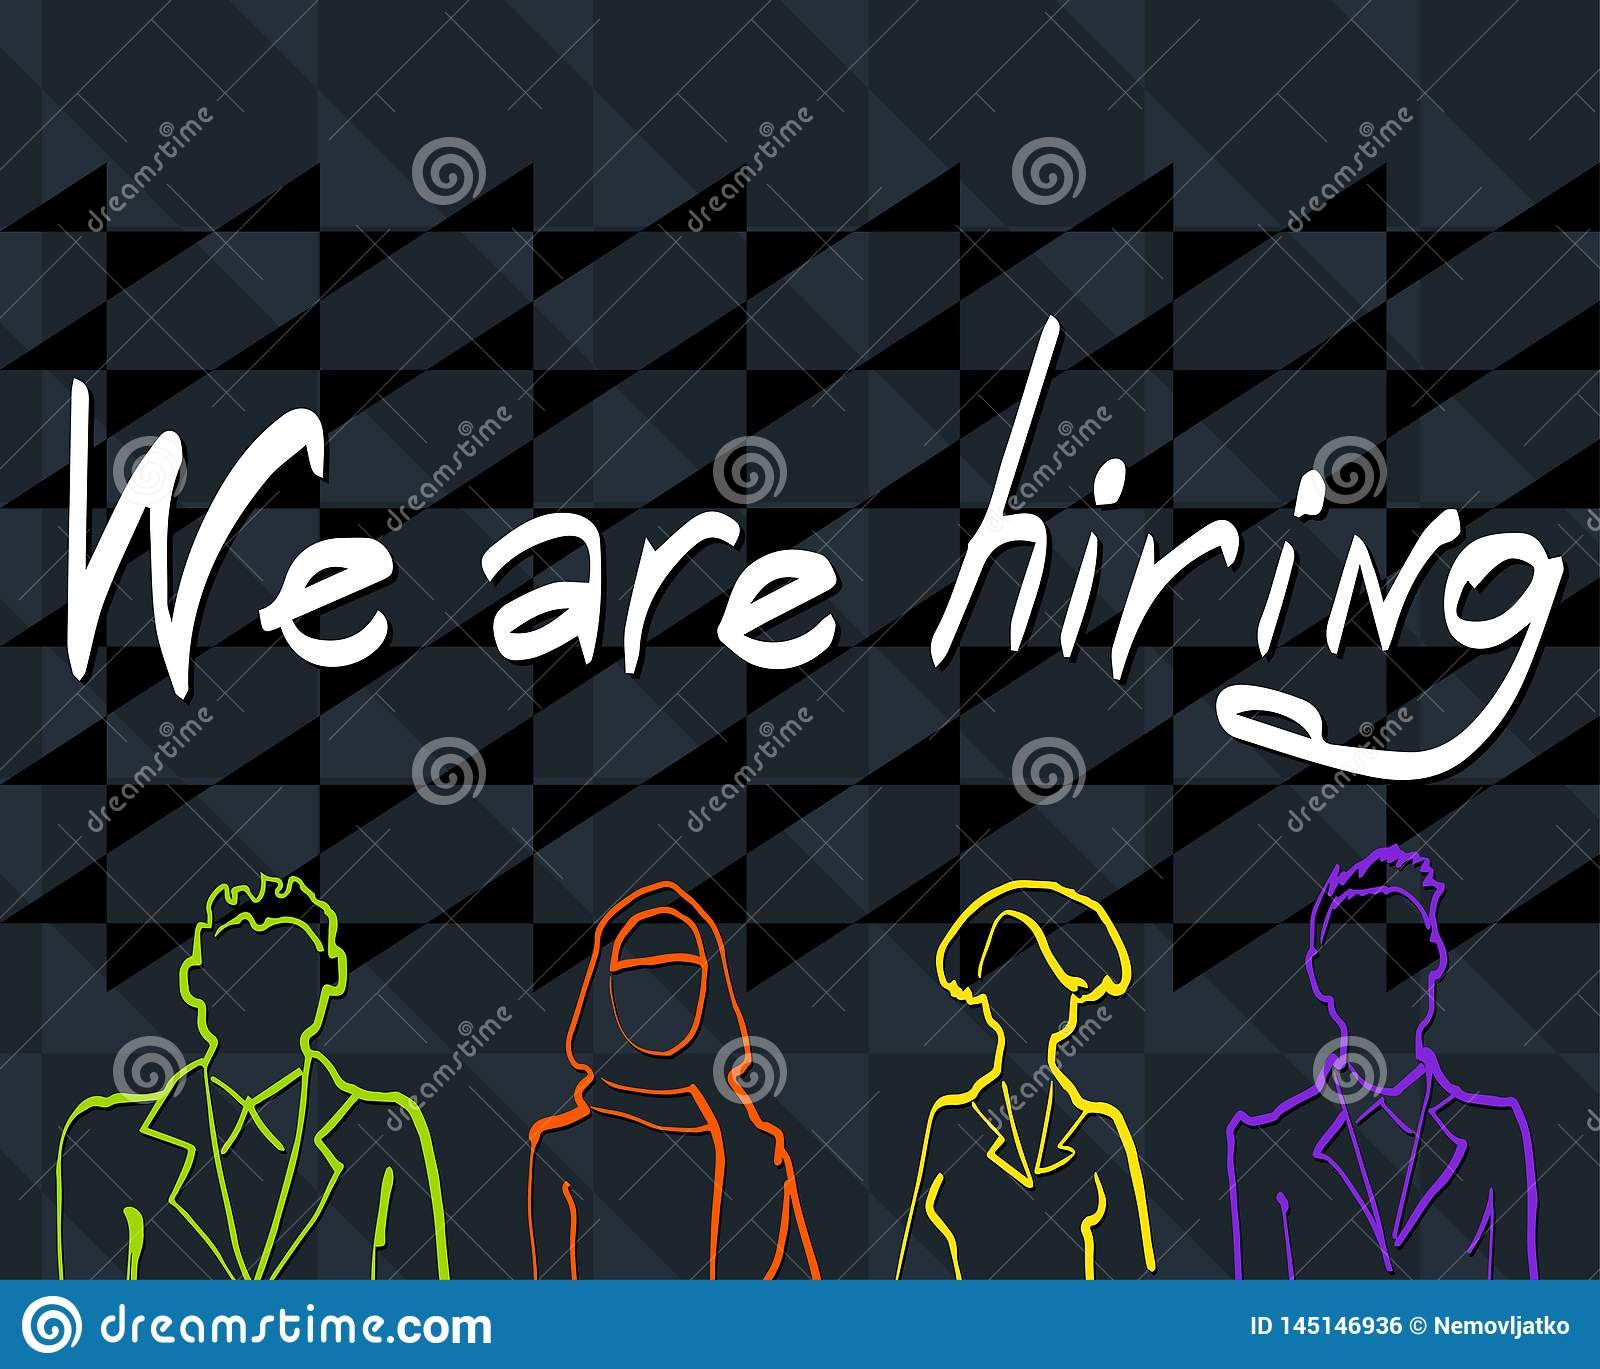 Vector template with the words We are hiring